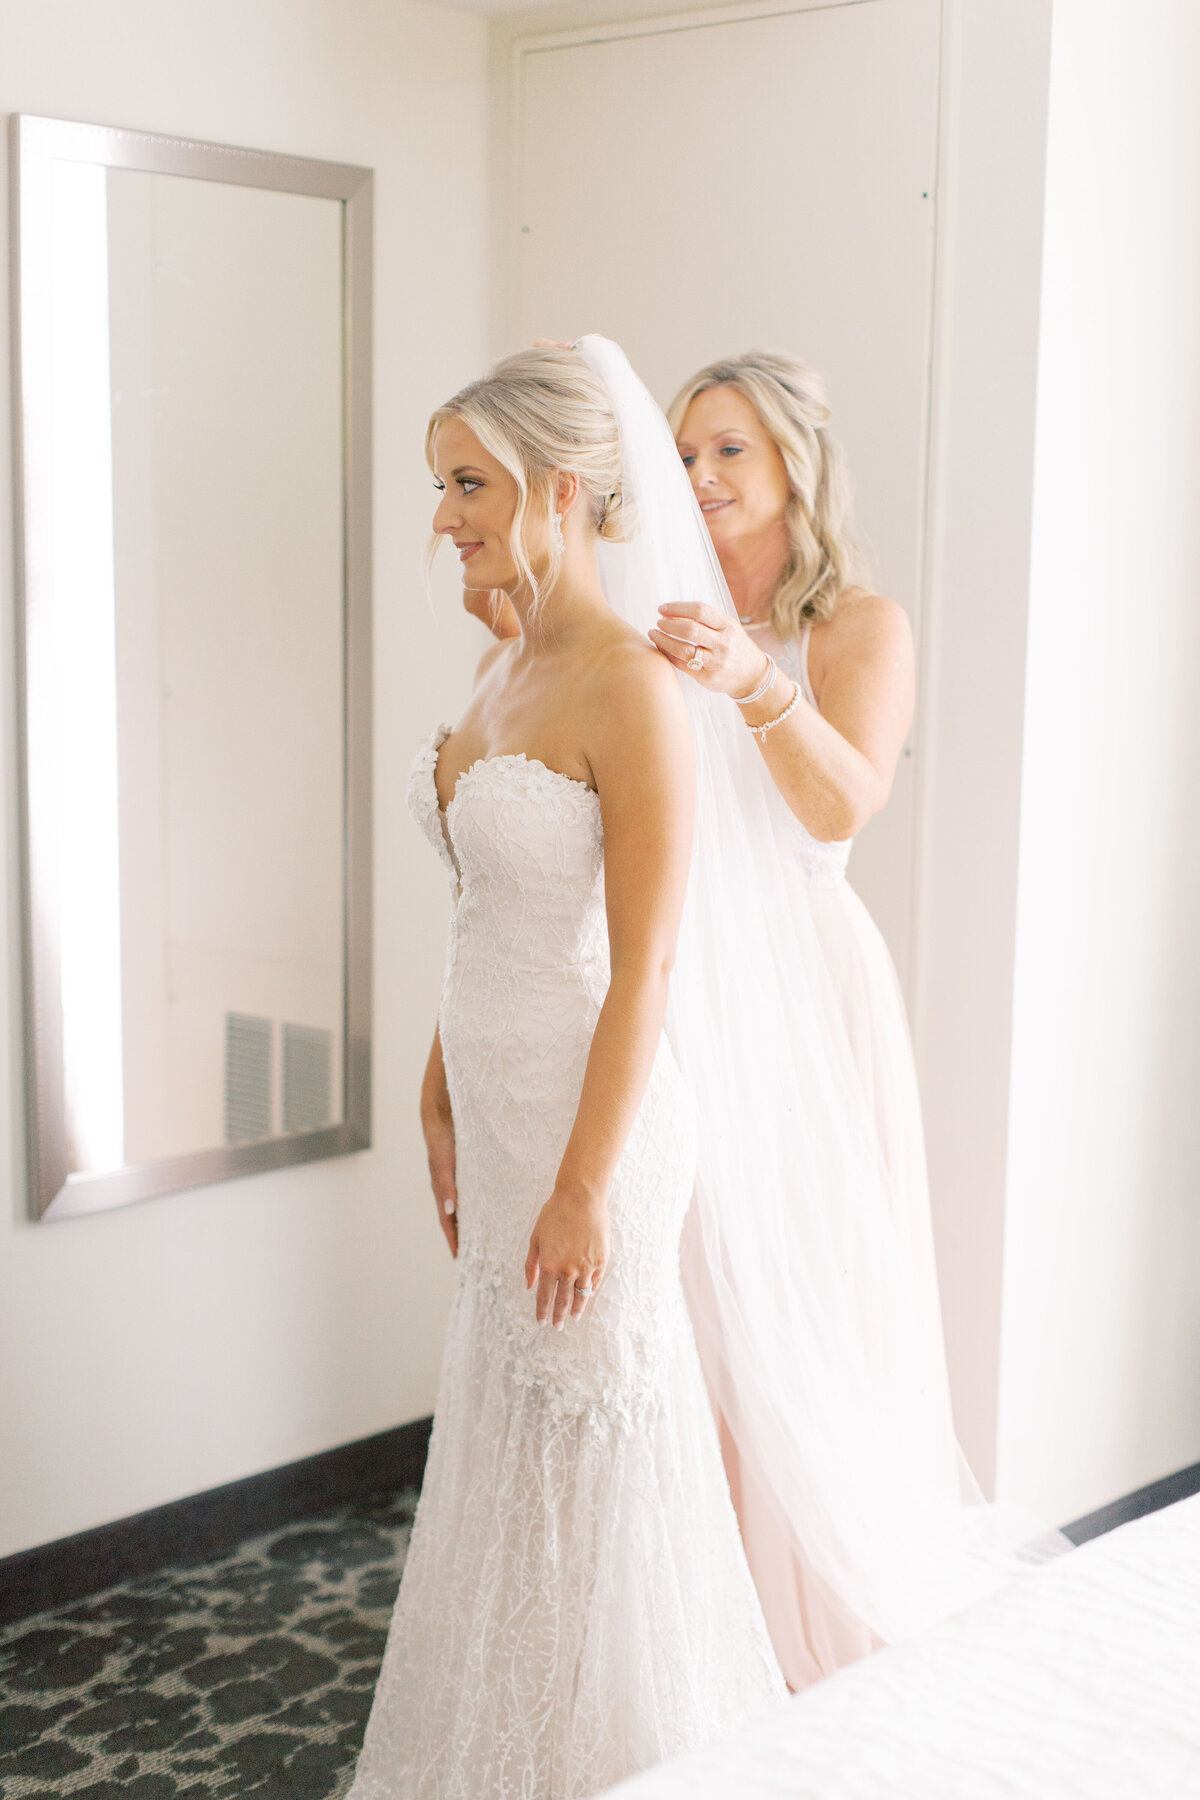 Melton_Wedding__Middleton_Place_Plantation_Charleston_South_Carolina_Jacksonville_Florida_Devon_Donnahoo_Photography__0119